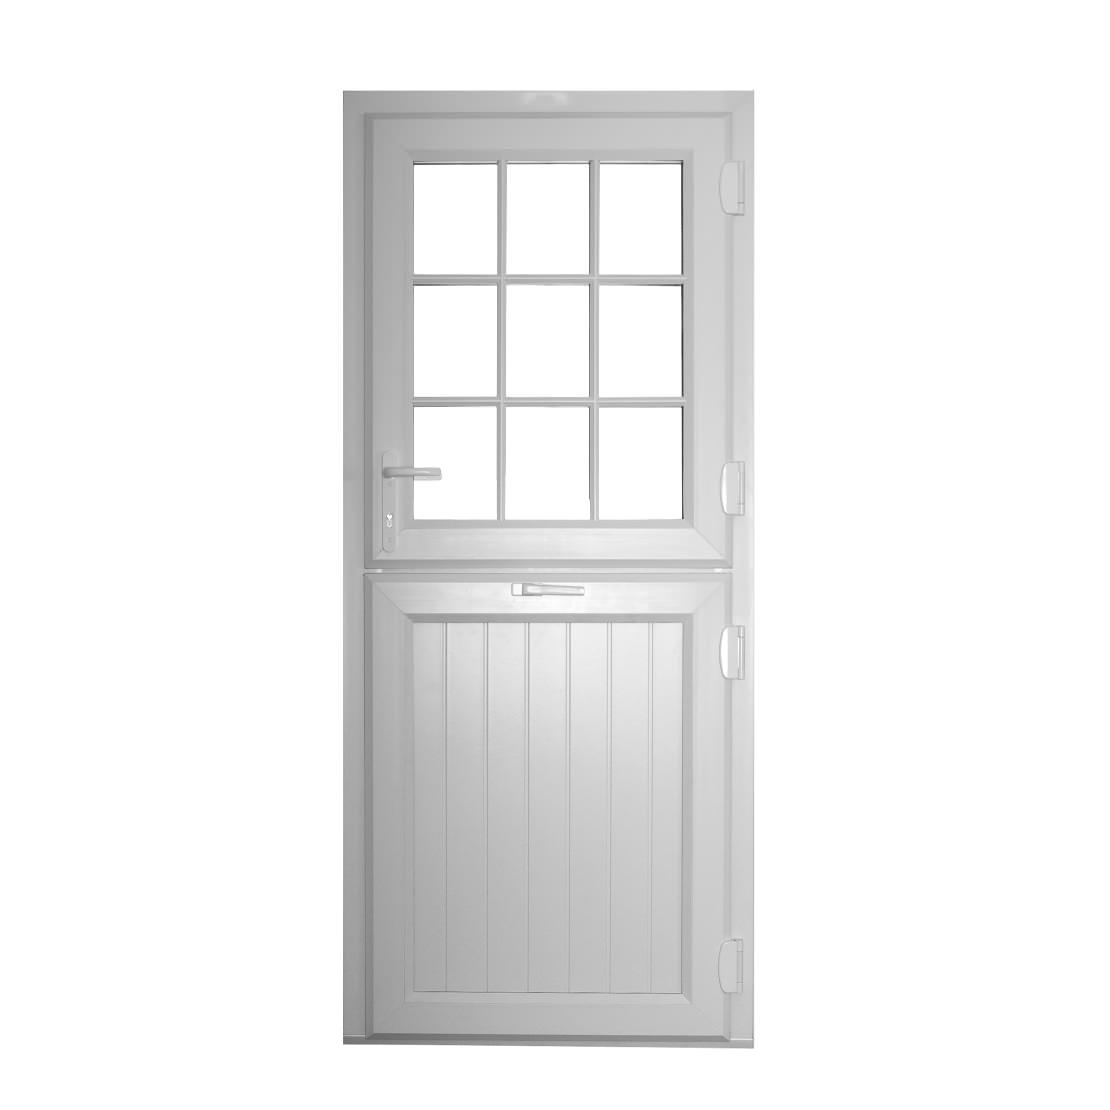 Upvc bi fold doors french patio doors upvc patio doors for Upvc french doors with cat flap